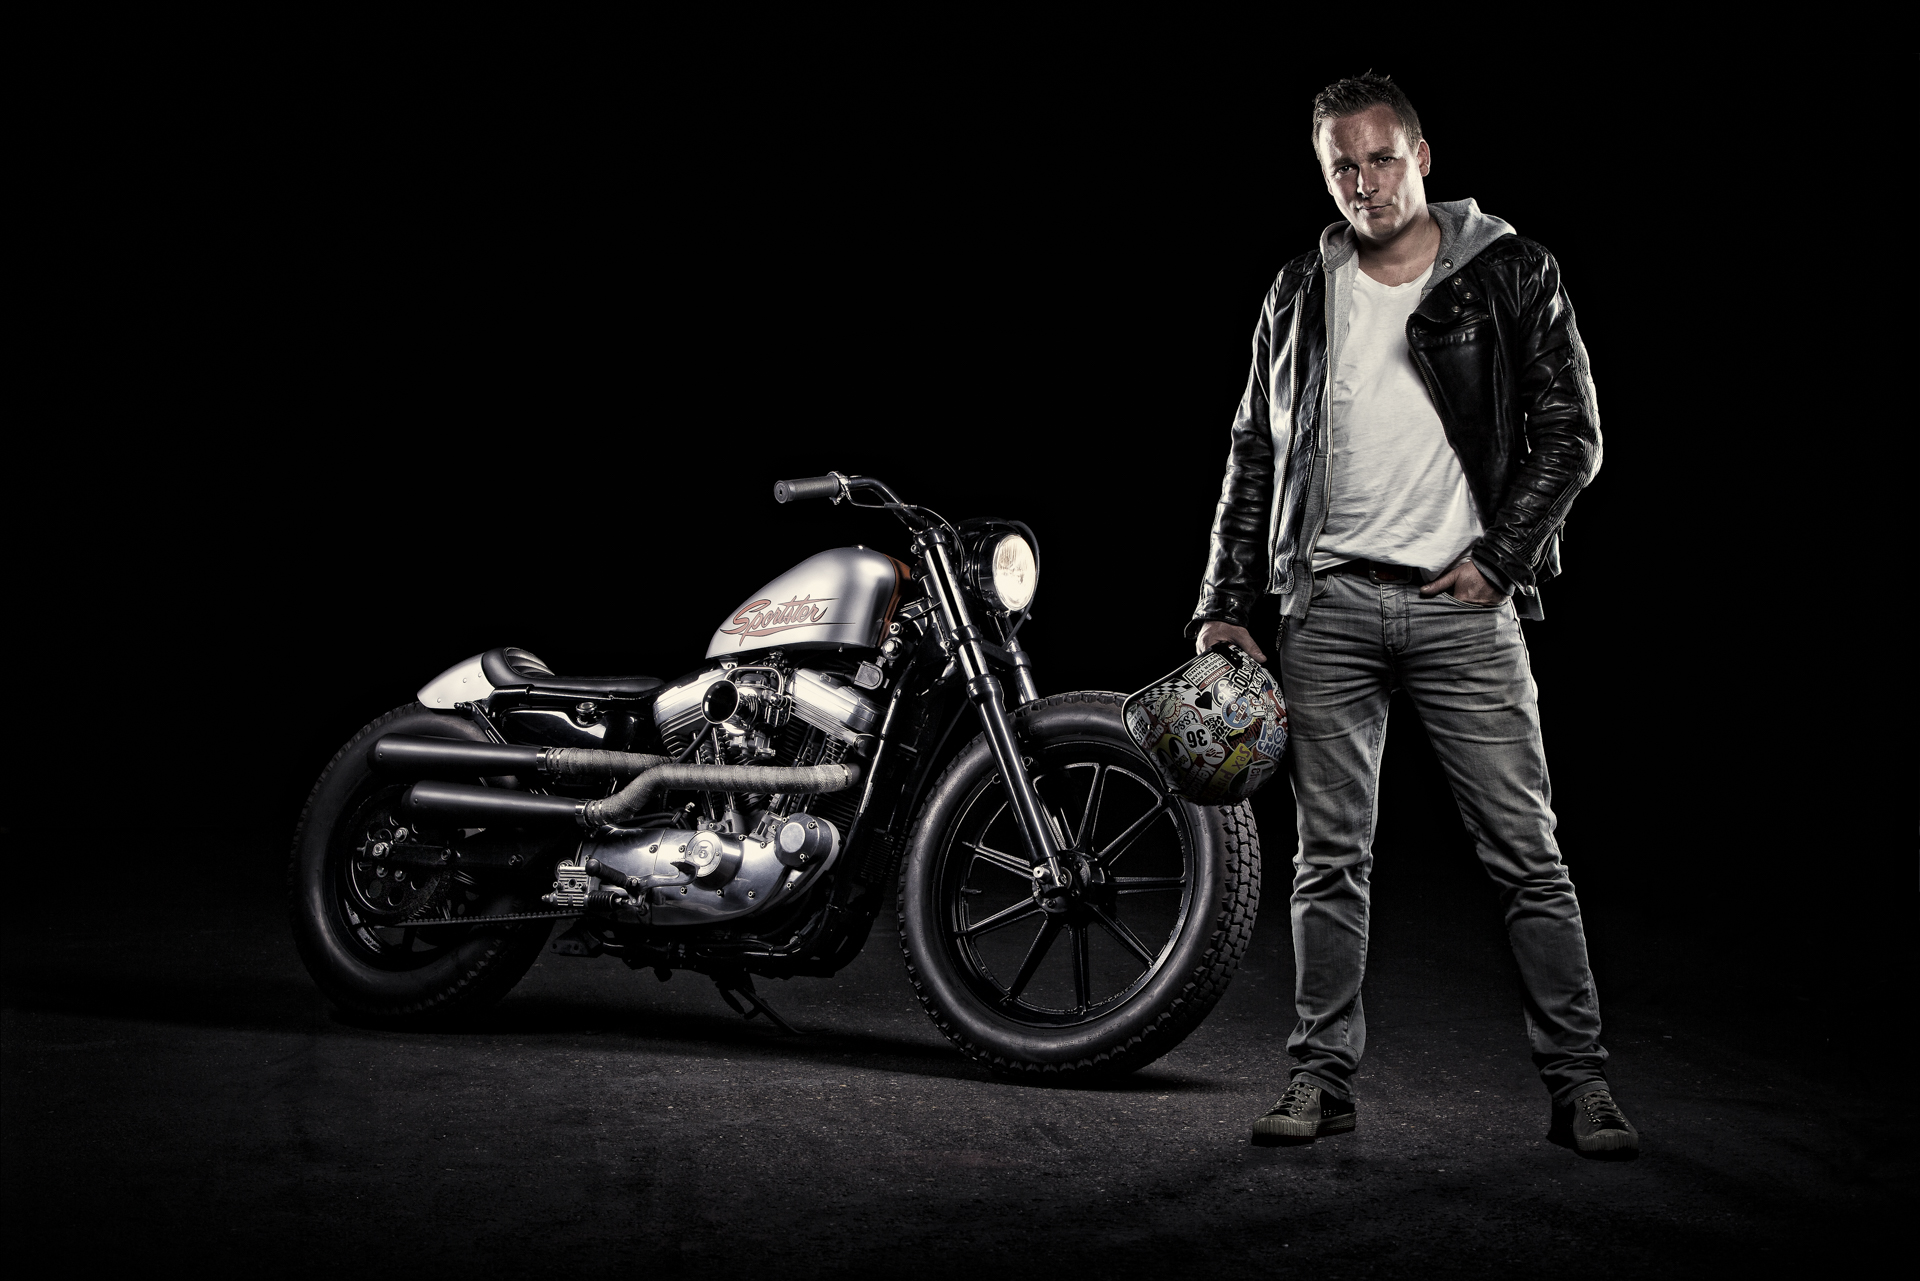 Ruben and his Harley Sportster 883